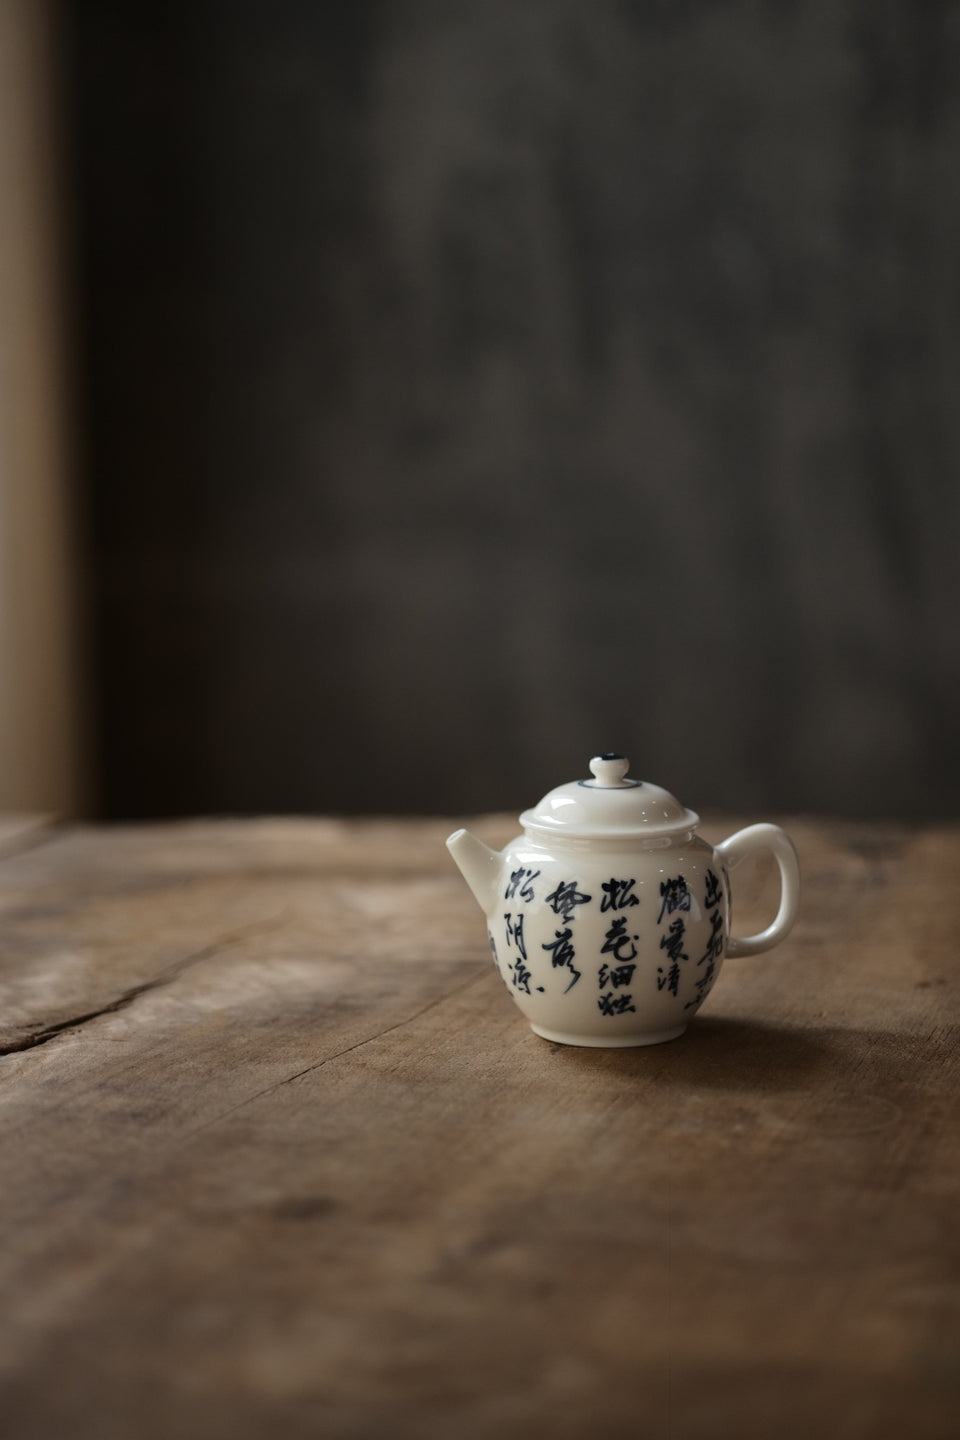 Qinghua Pine Tree and Crane Teapot